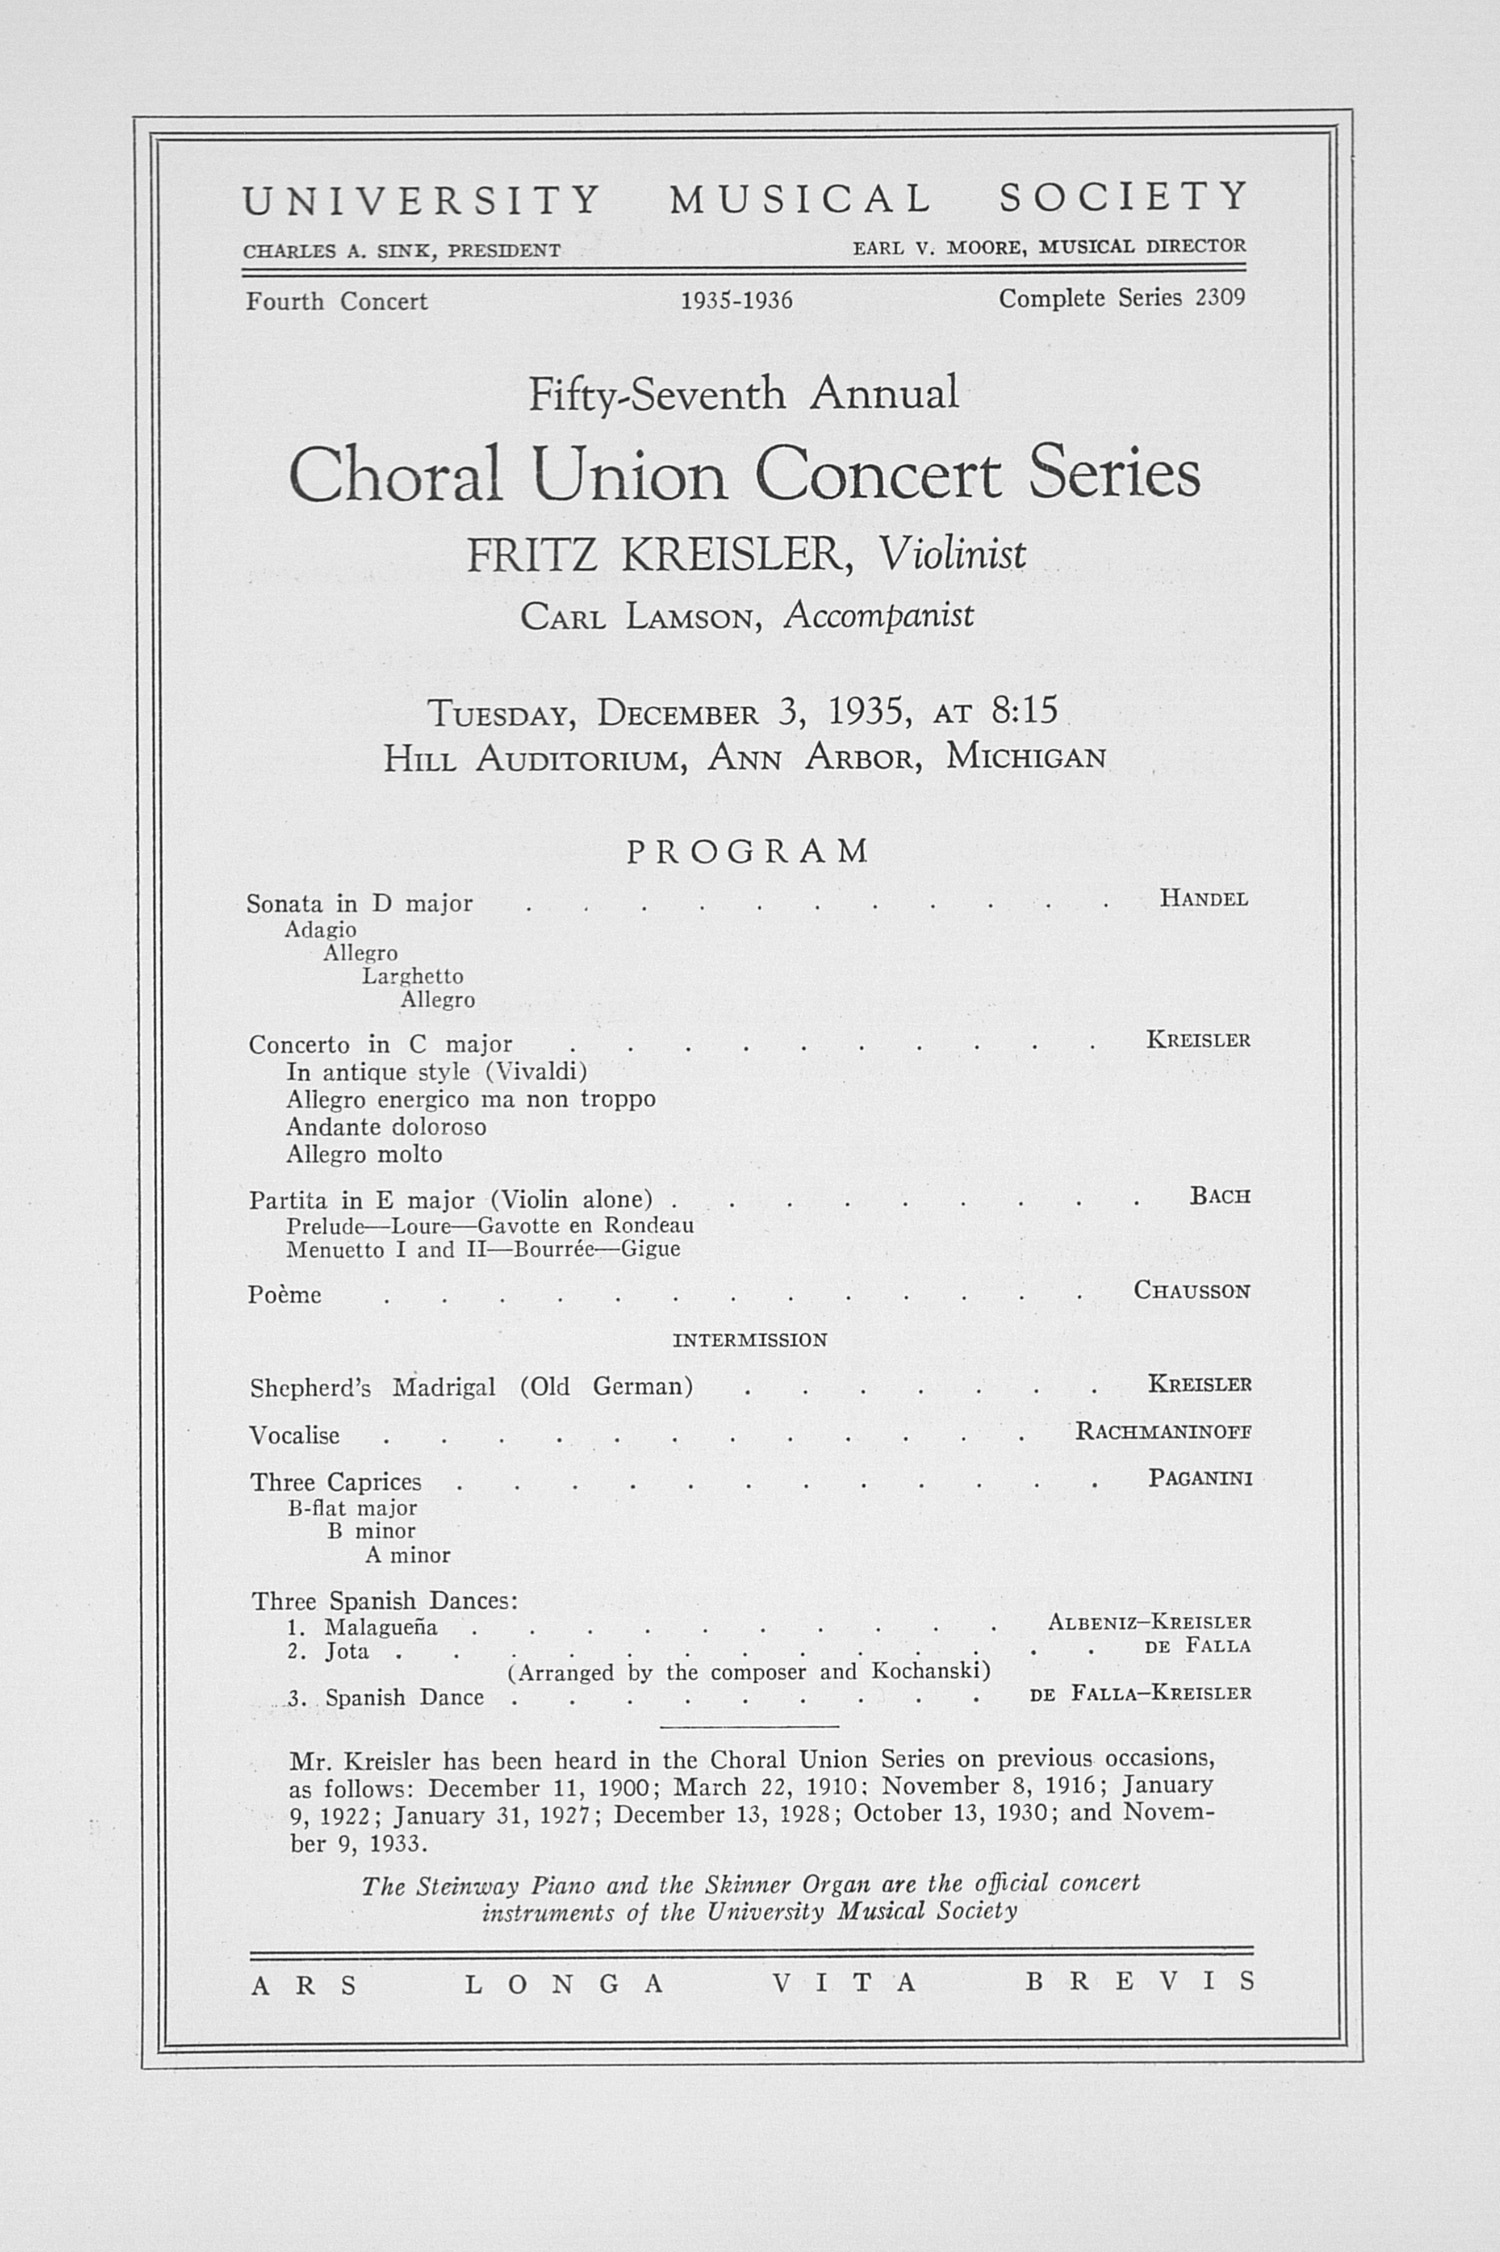 UMS Concert Program, December 3, 1935: Fifty-seventh Annual Choral Union Concert Series -- Fritz Kreisler image